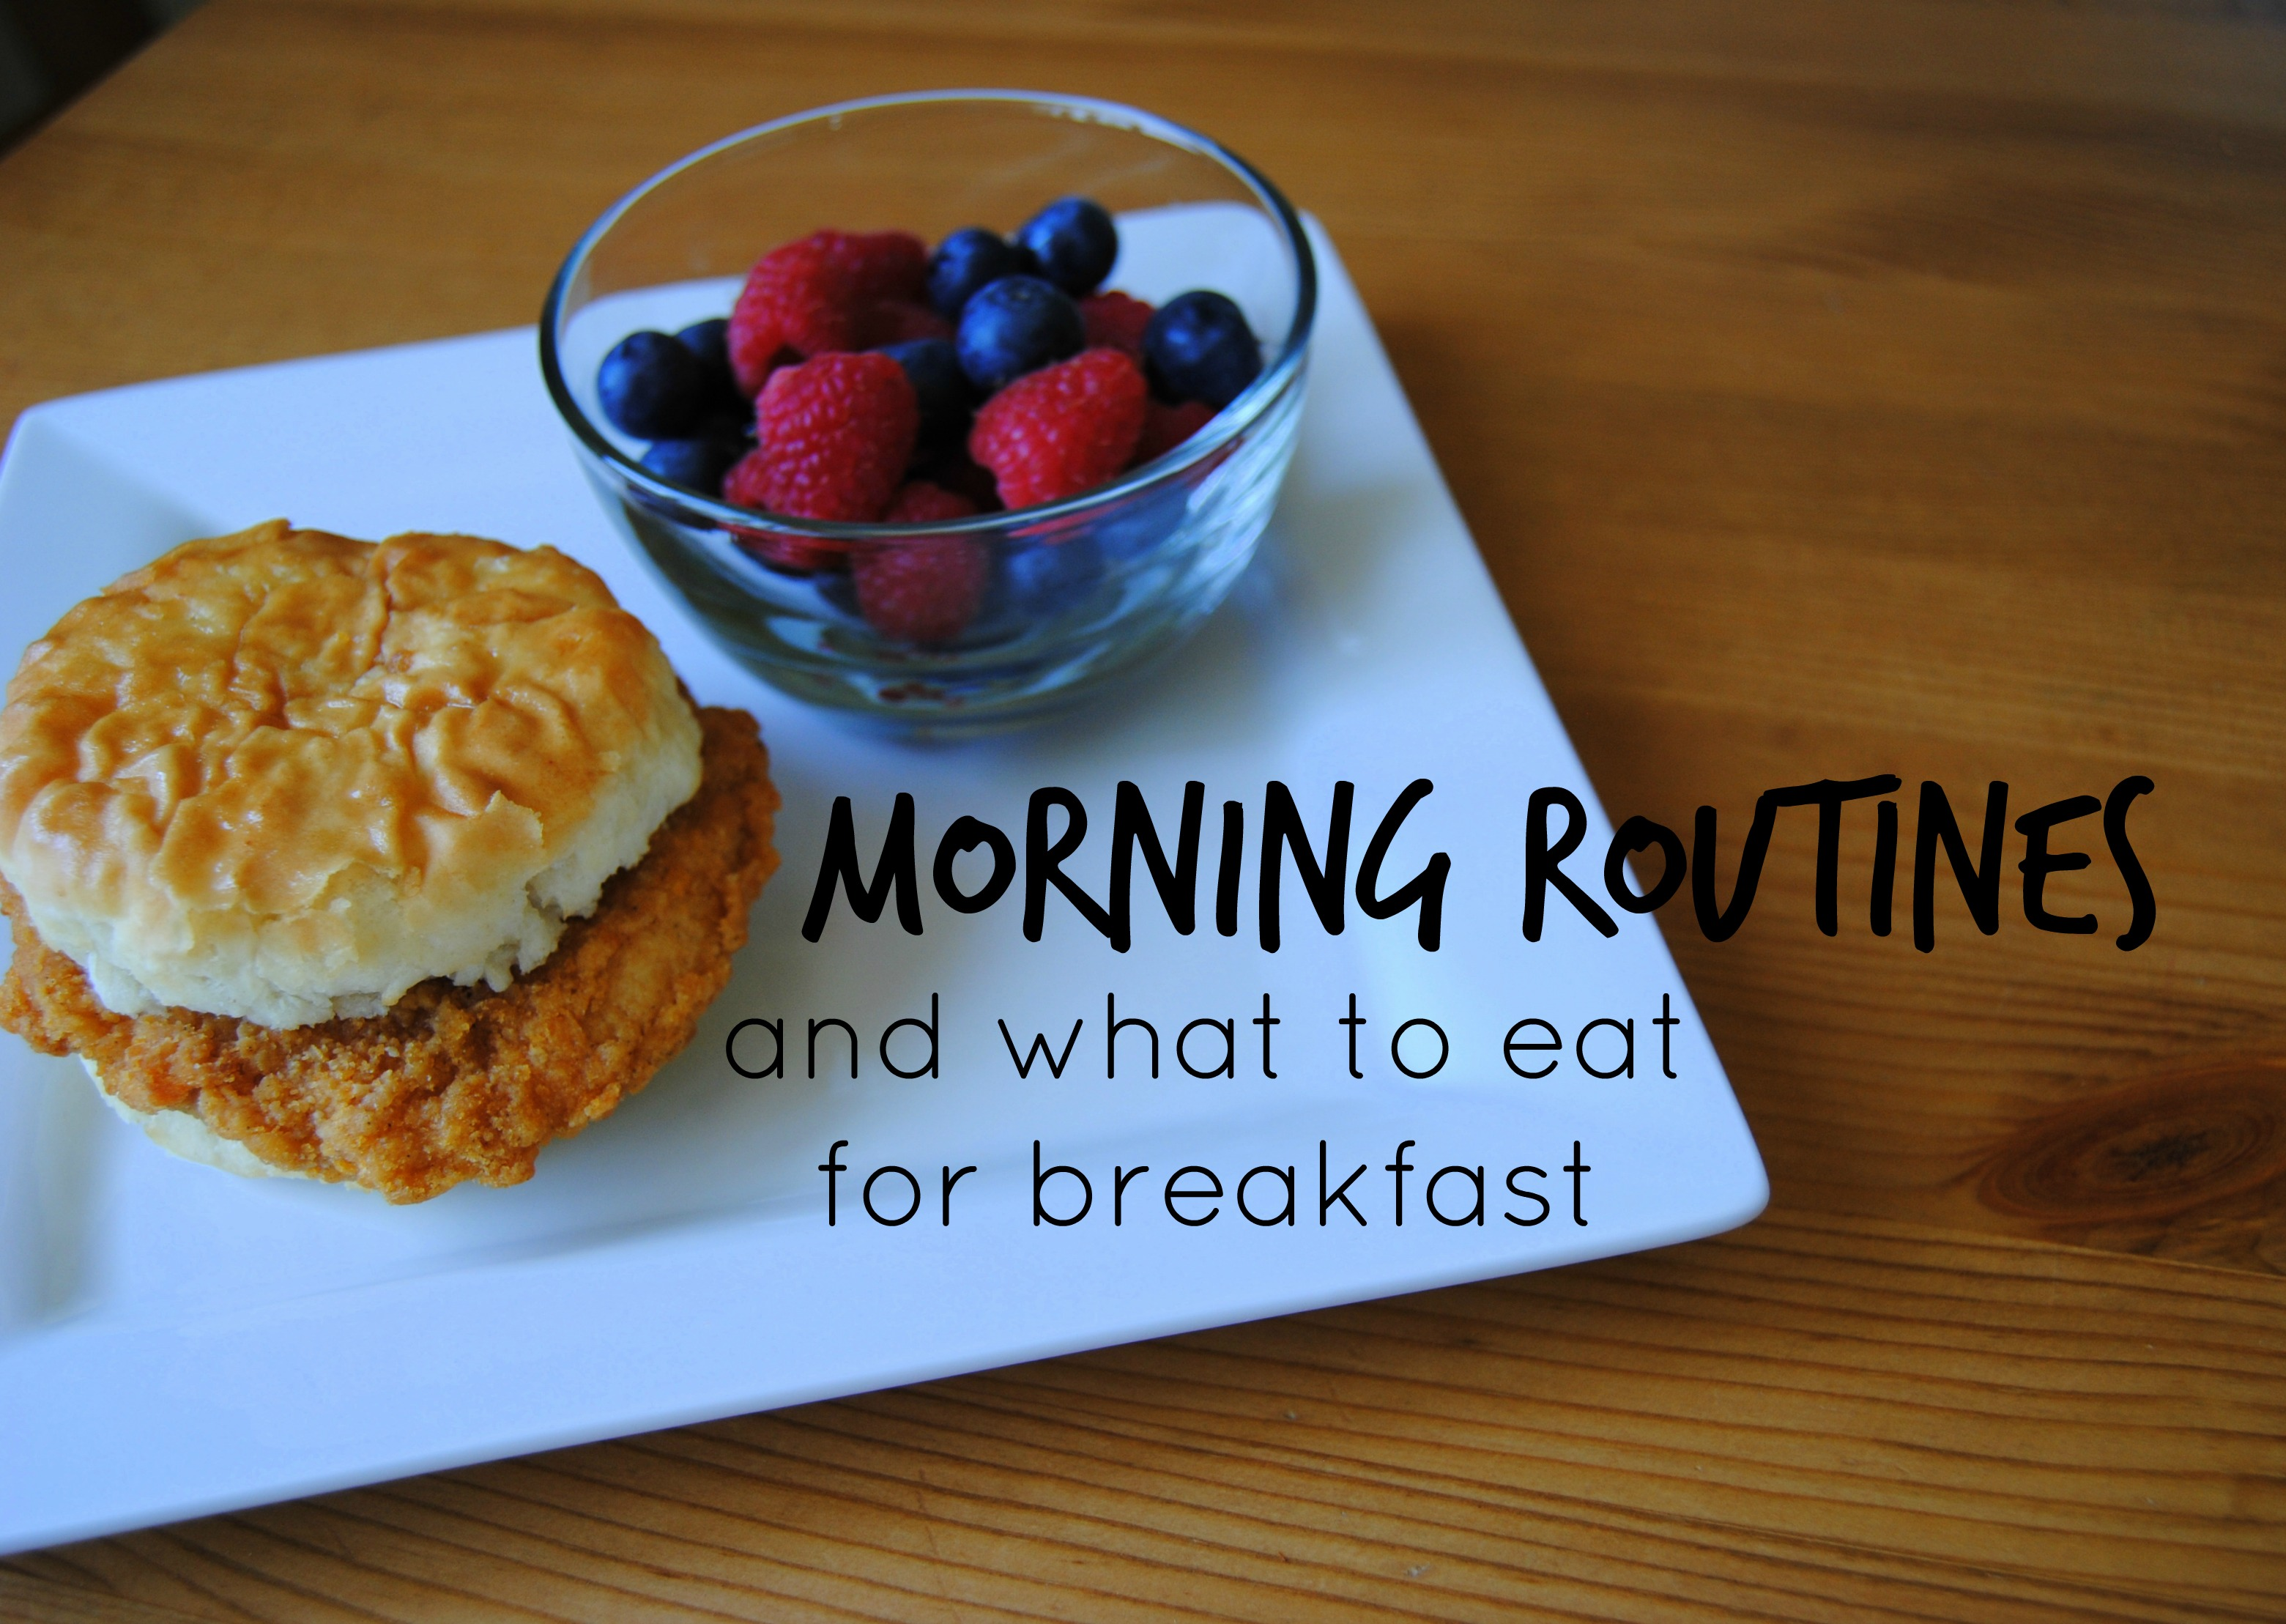 What to eat for breakfast 10